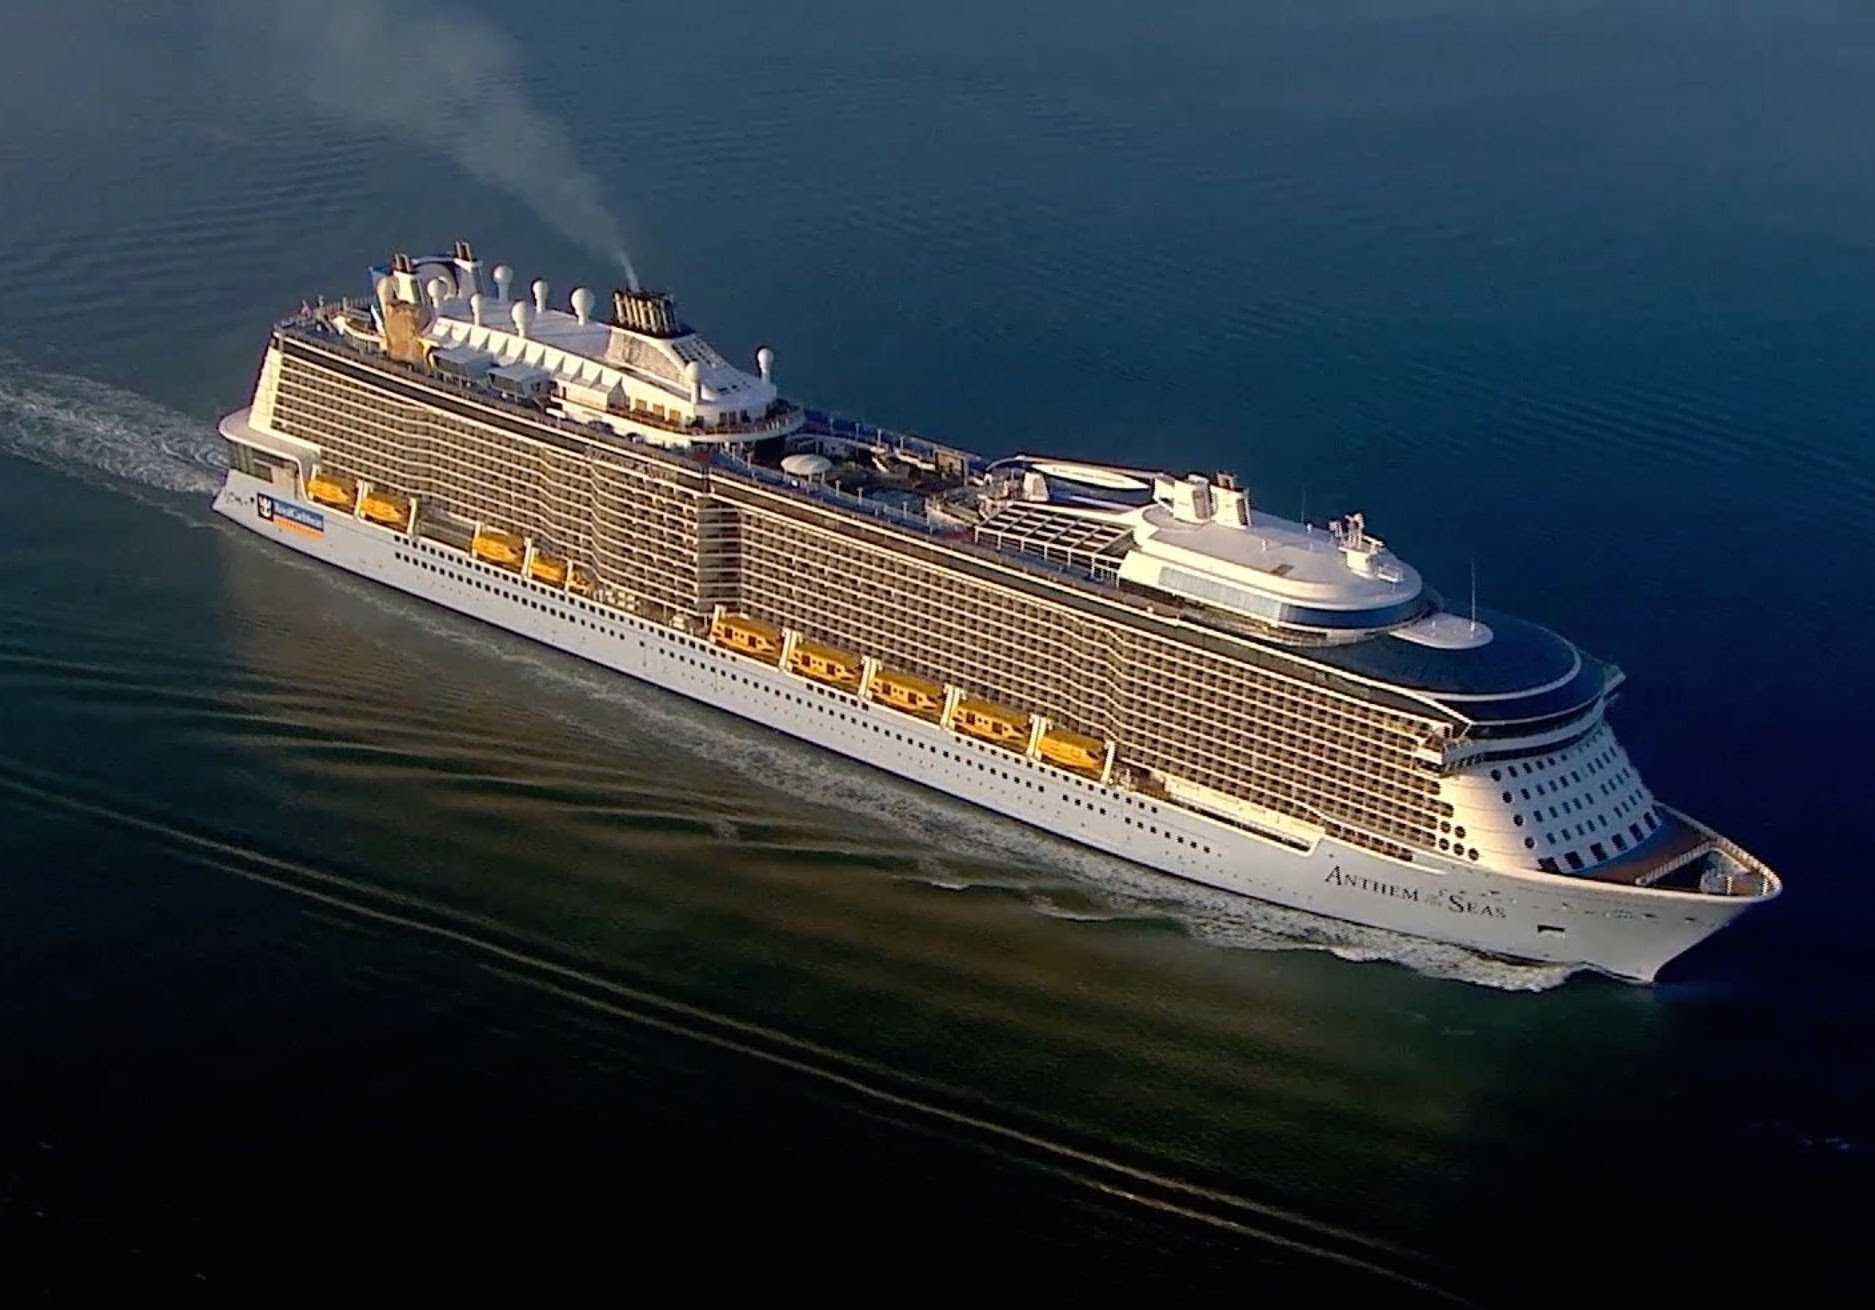 Royal Caribbean Cruise Ship Caught In Storm